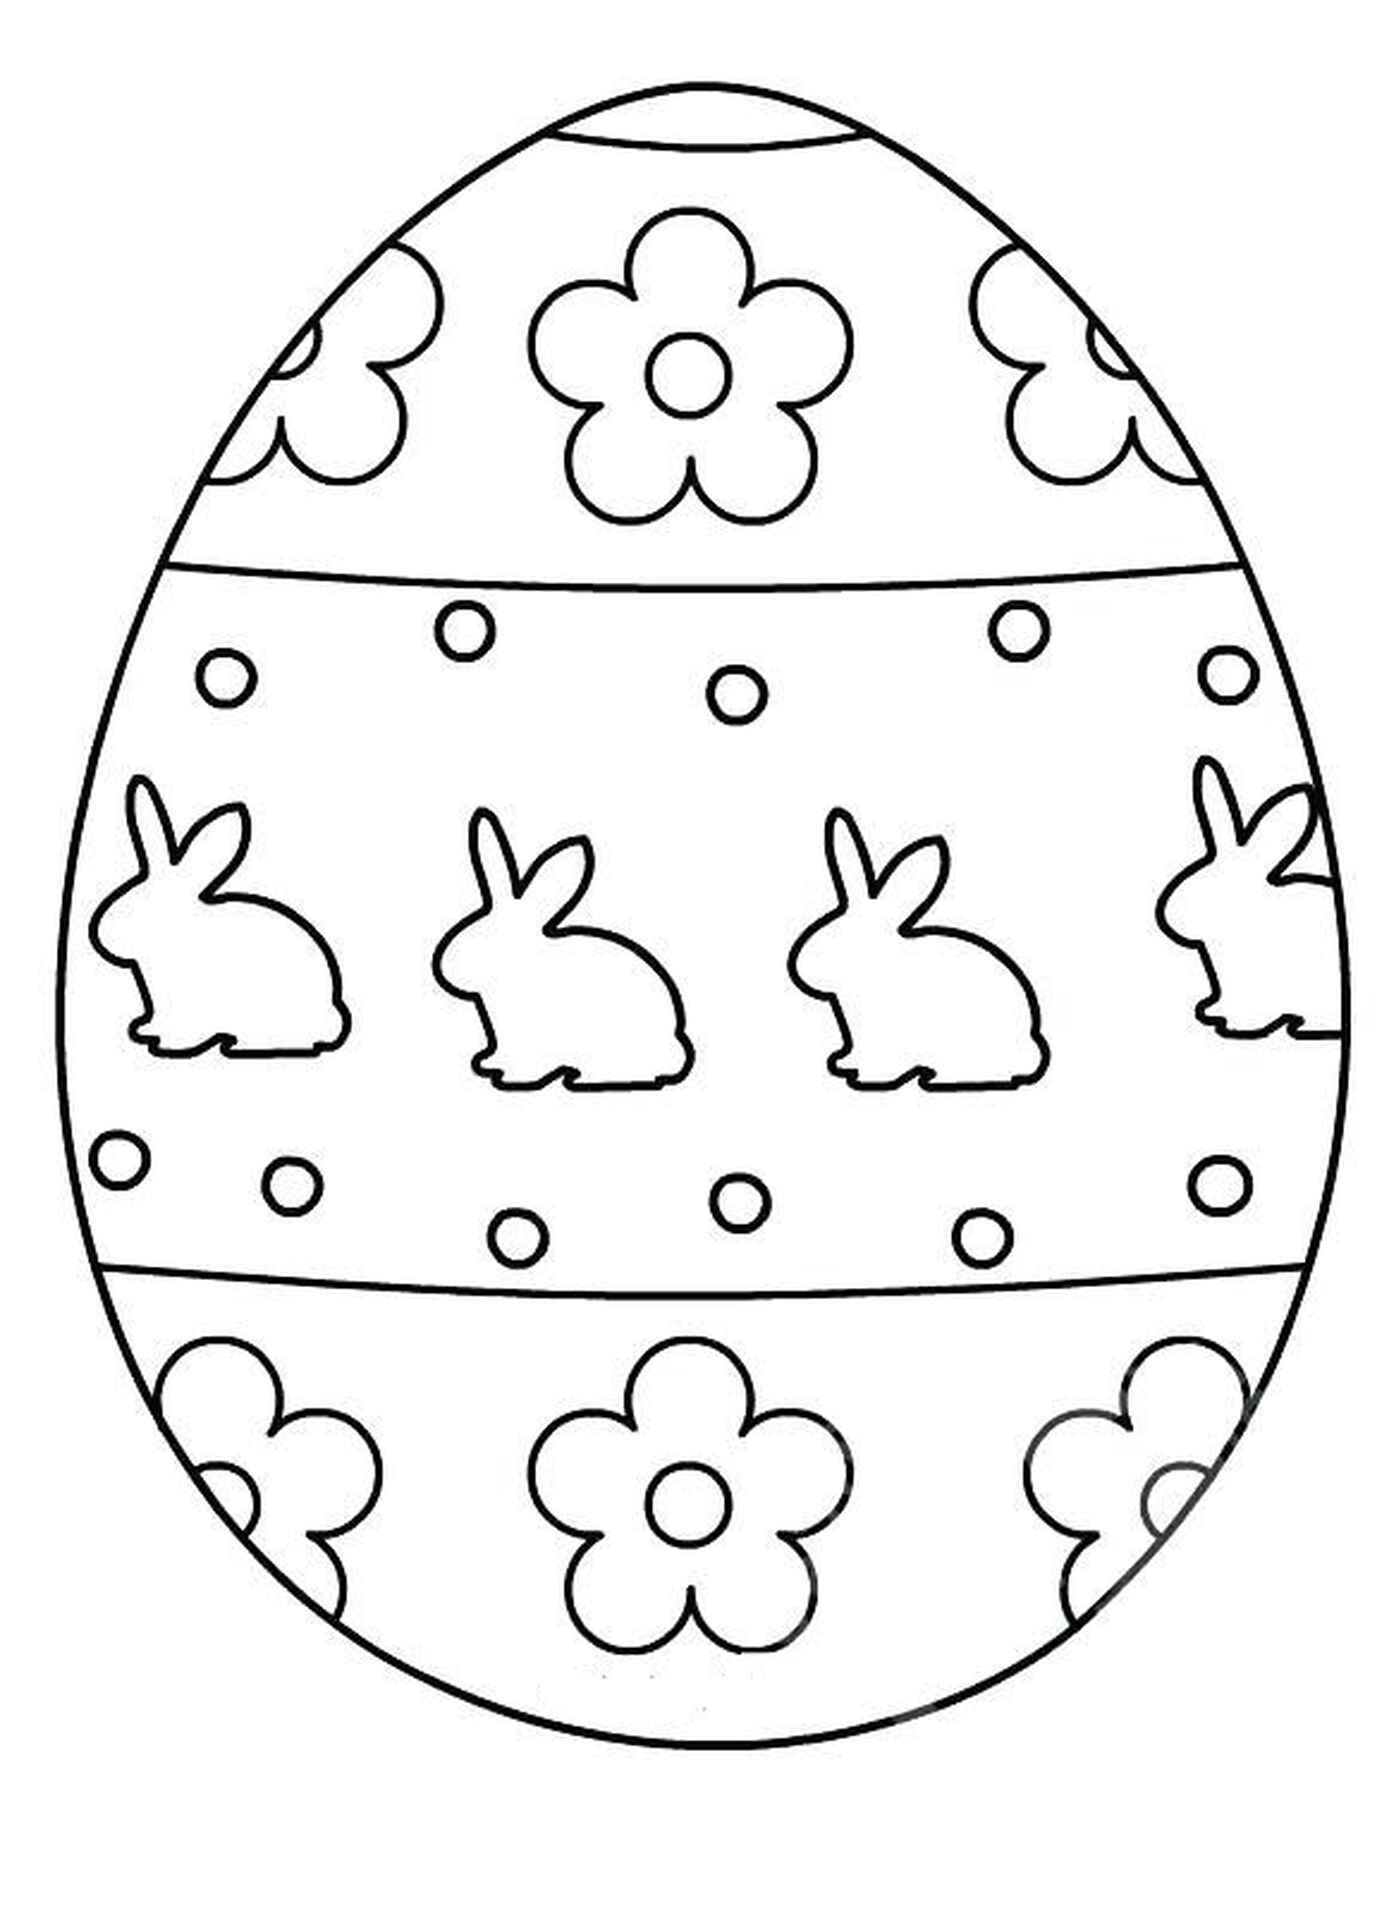 Easter Egg With Bunnies And Flowers Coloring Page